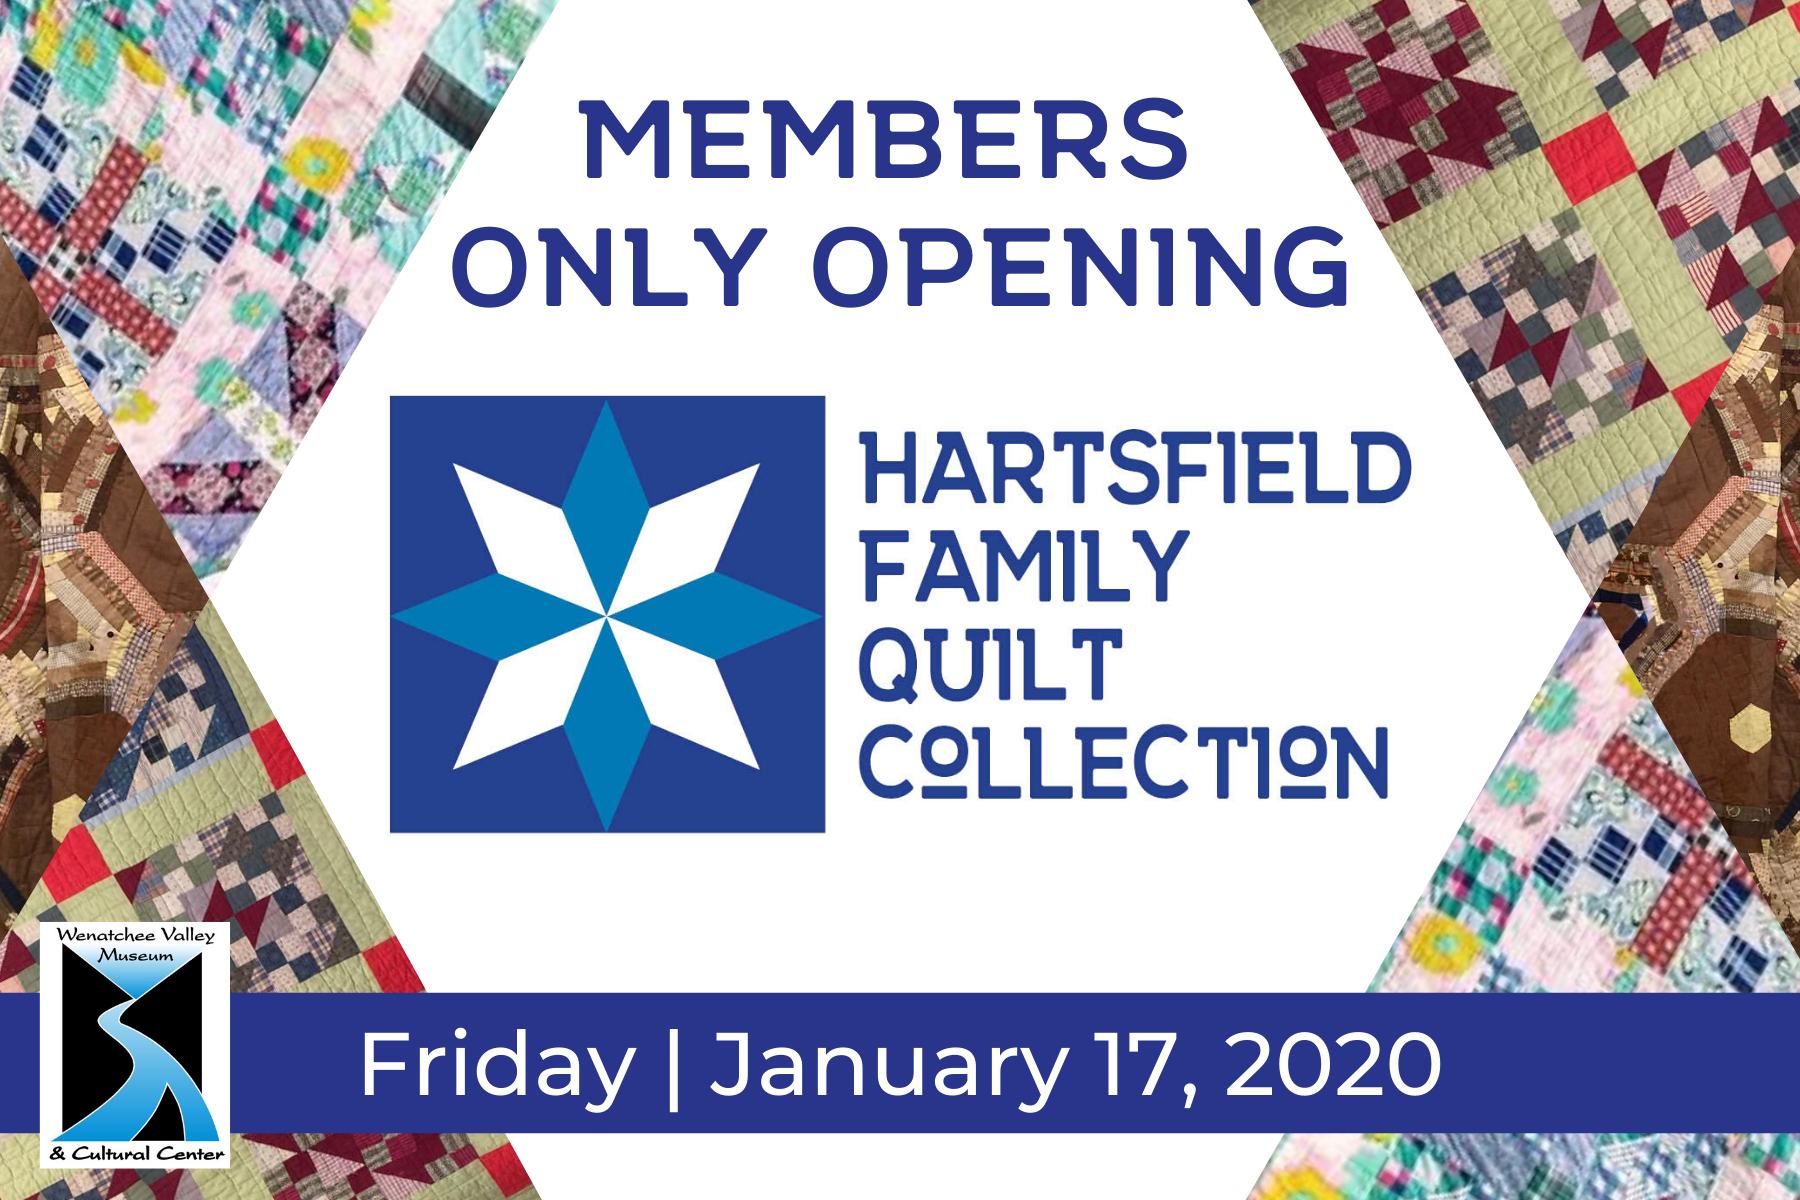 Hartsfield Family Quilt